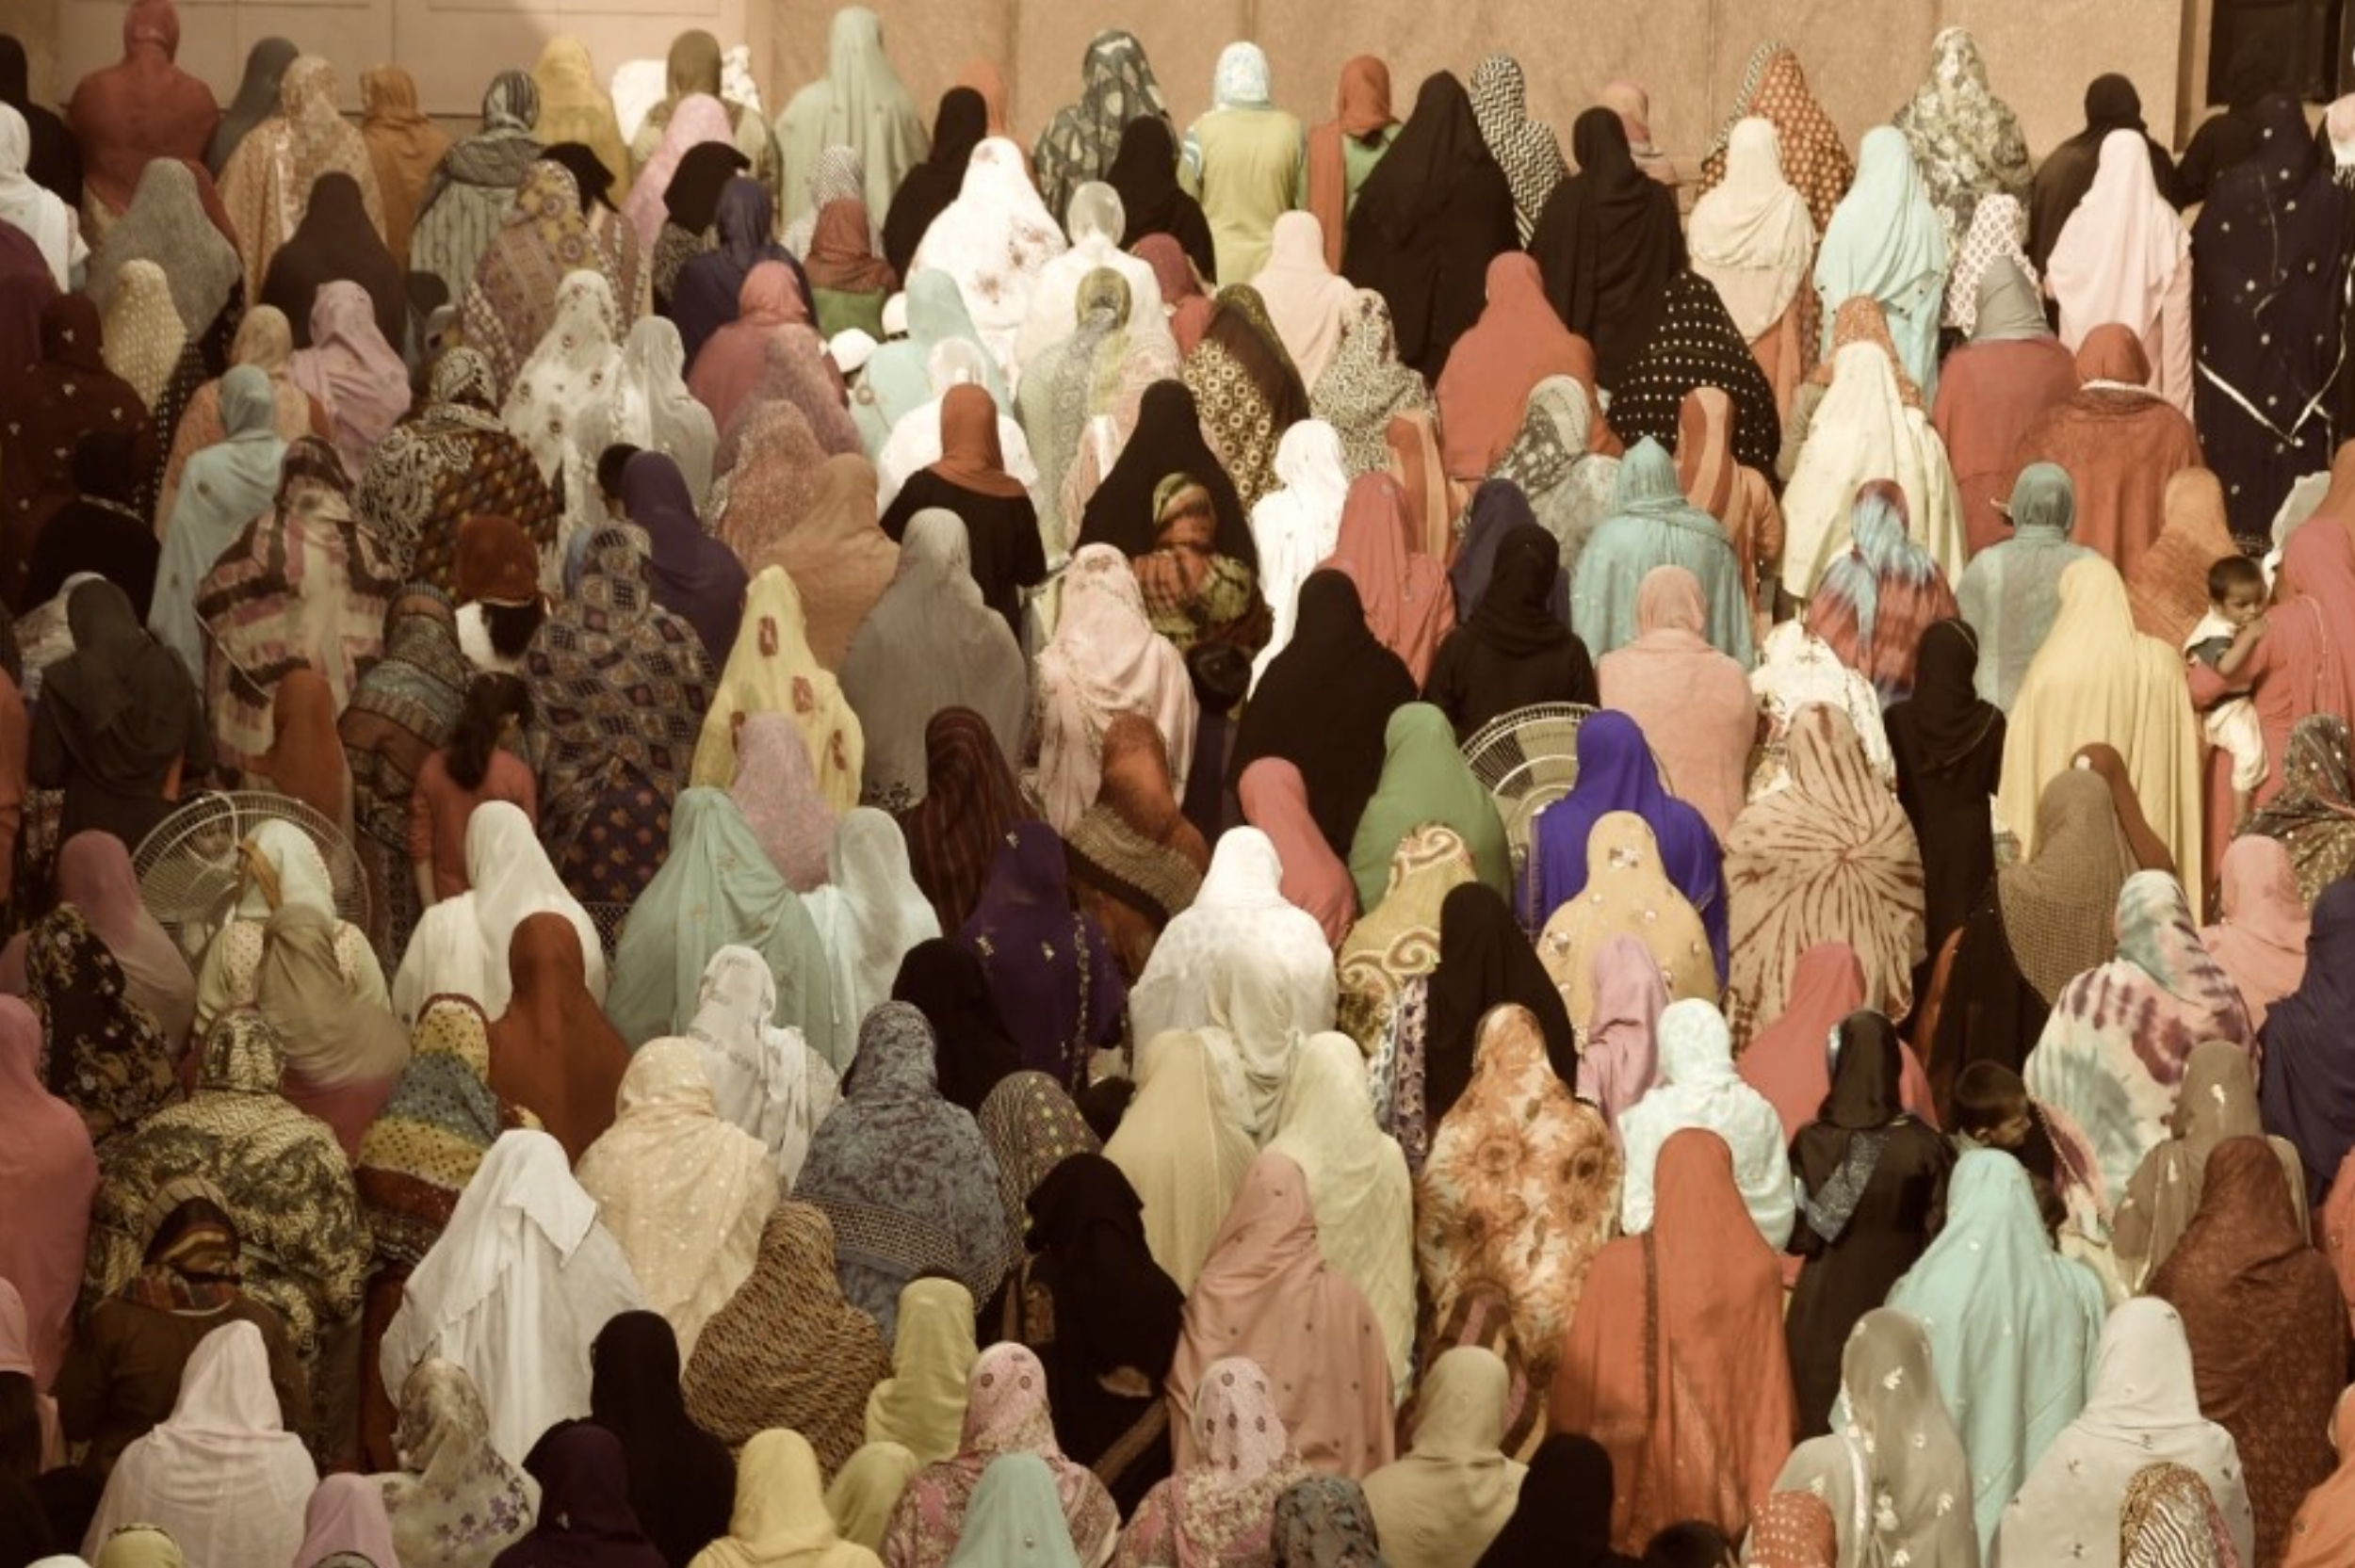 Muslim women praying.jpg